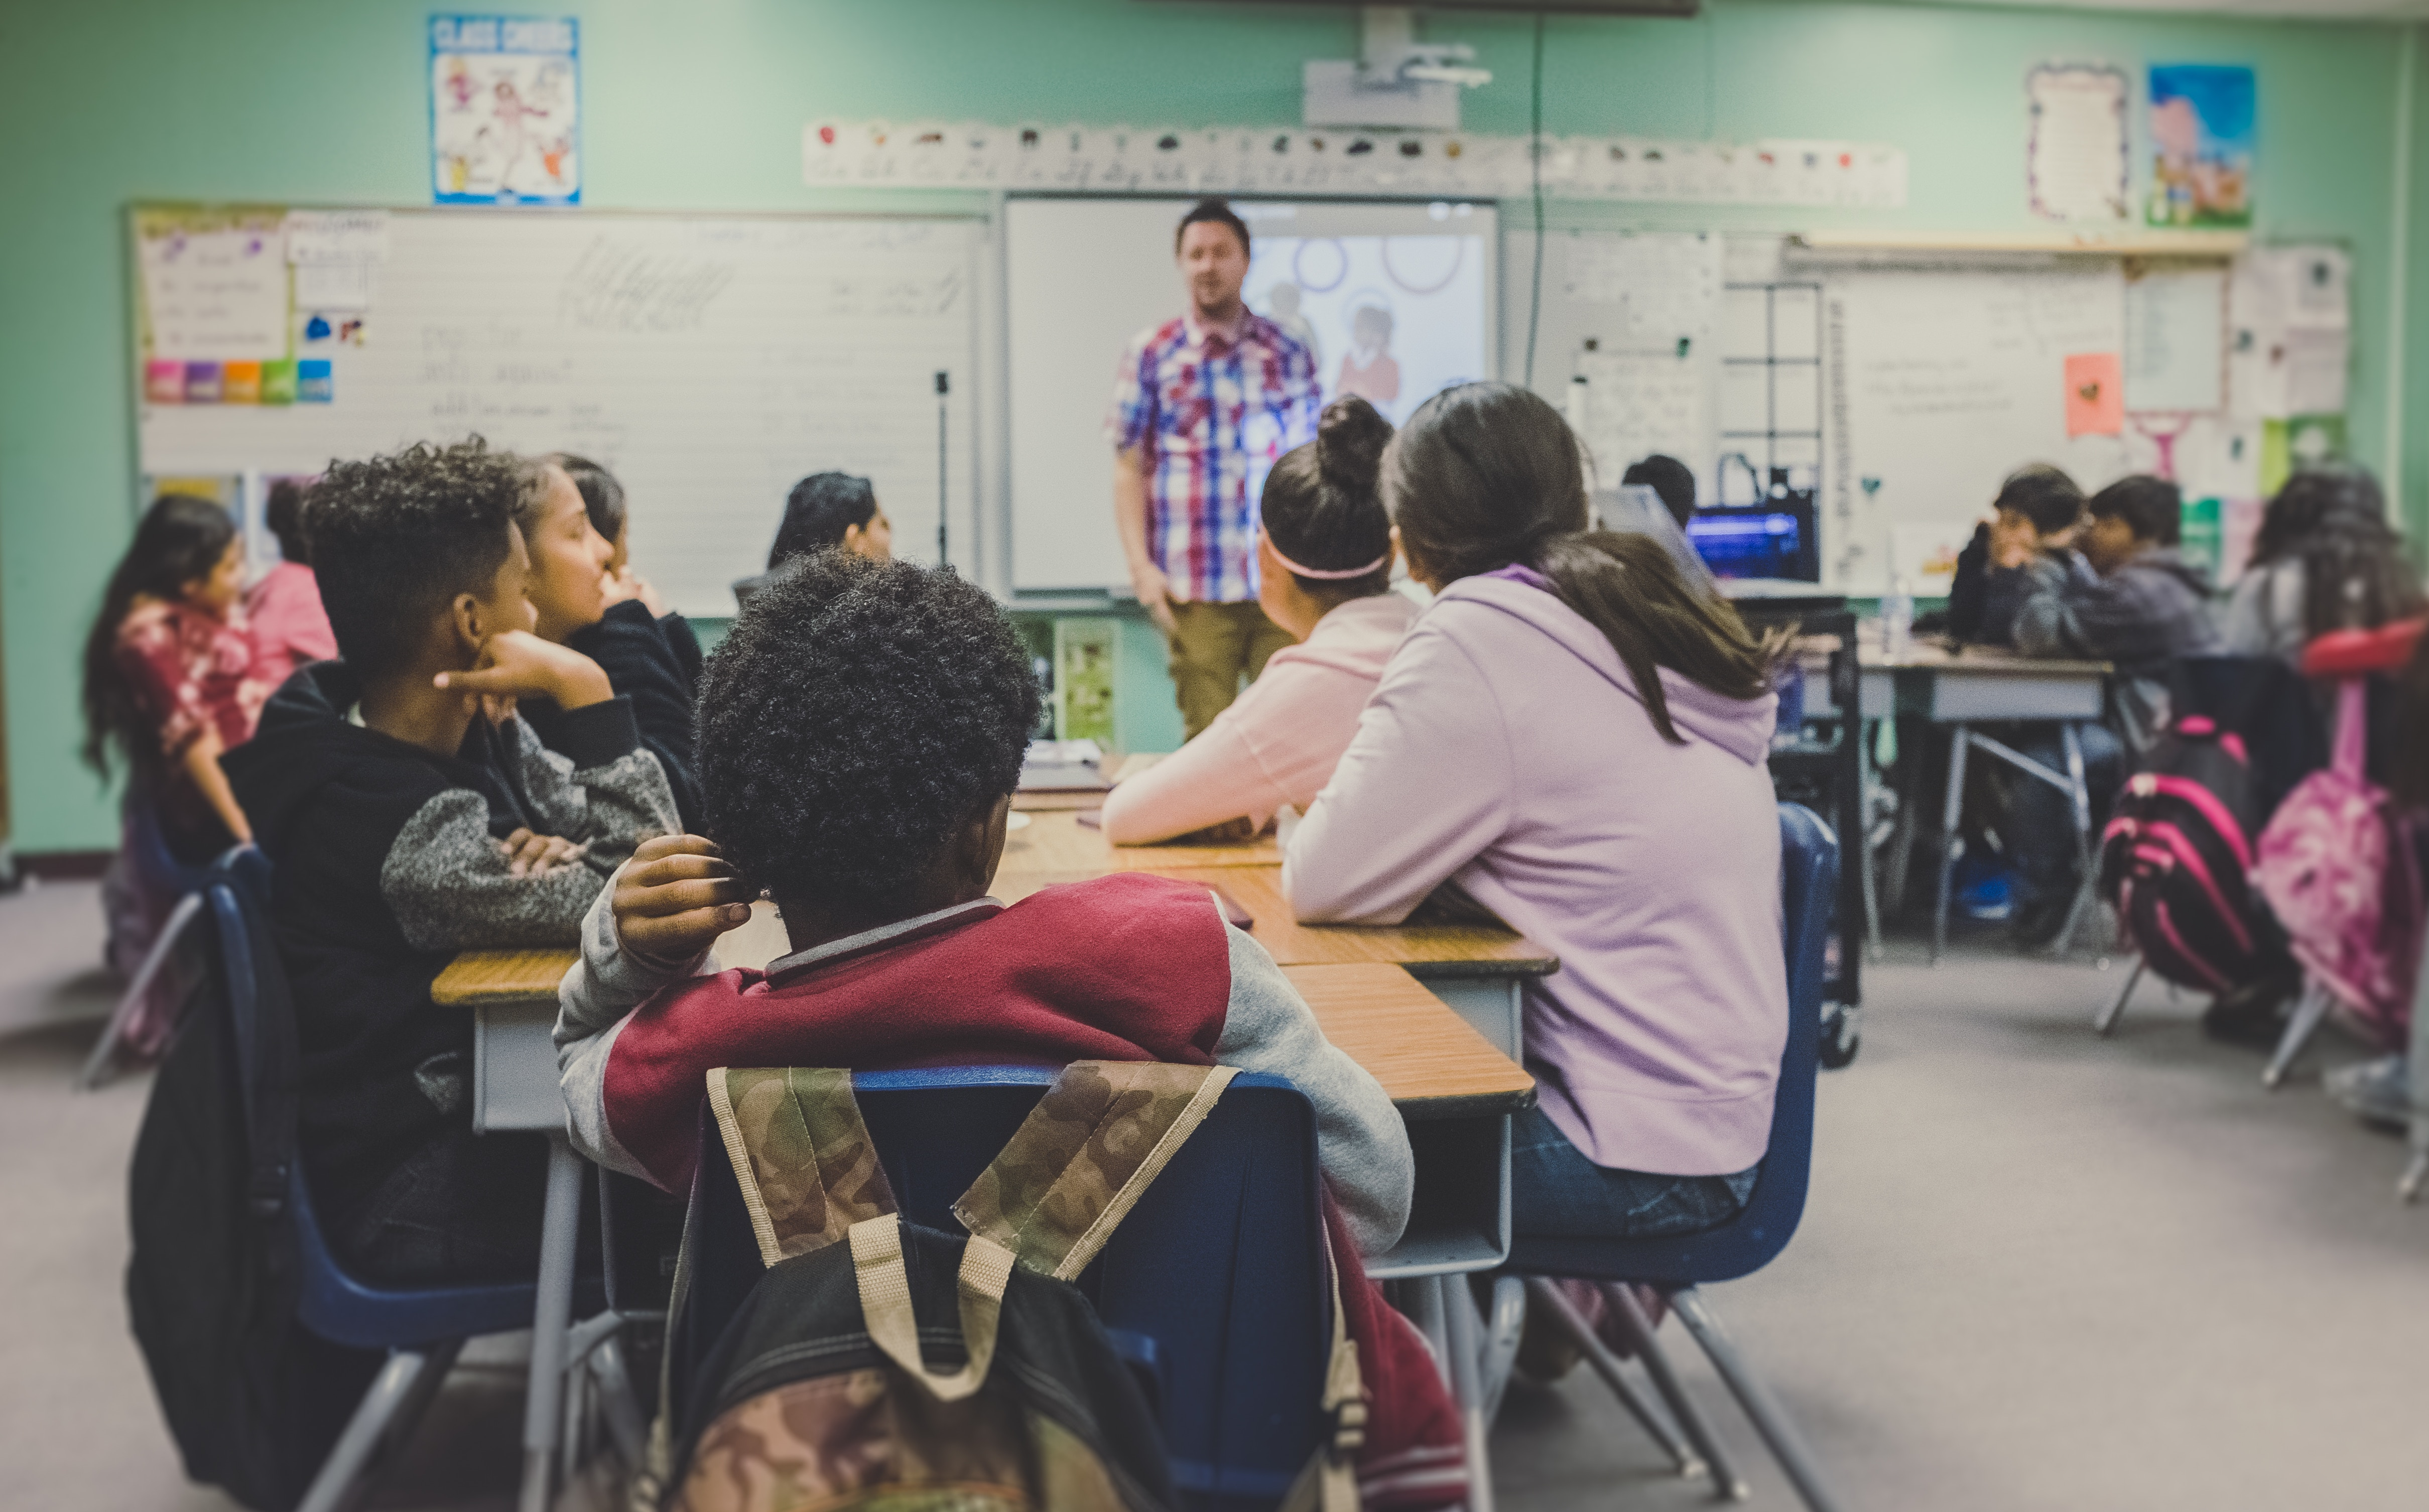 5 Things That Educators Should Know About the Philosophy of